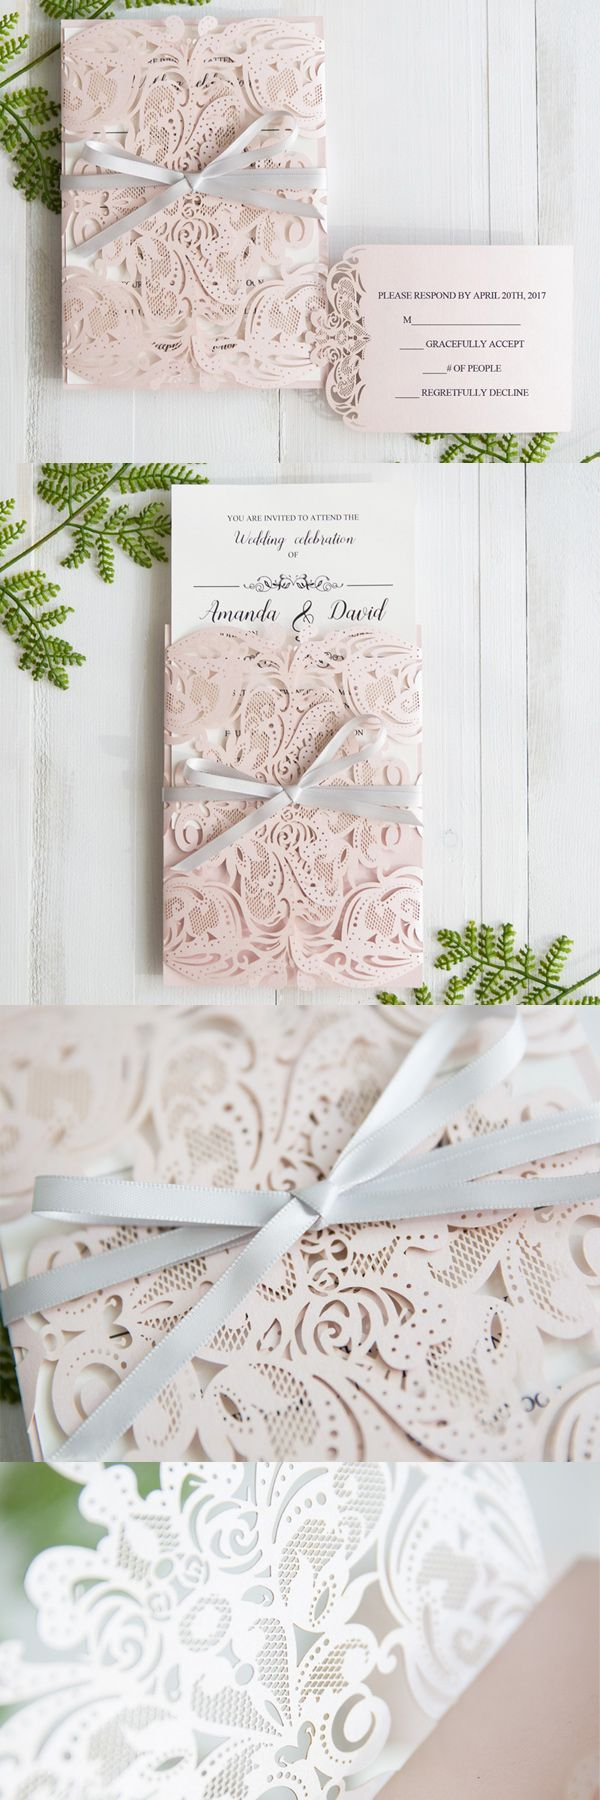 diy wedding invitations for second marriage%0A elegant blush pink floral laser cut wedding invitation cards EWWS       Laser cut wedding invitations  Blush pink and Laser cutting